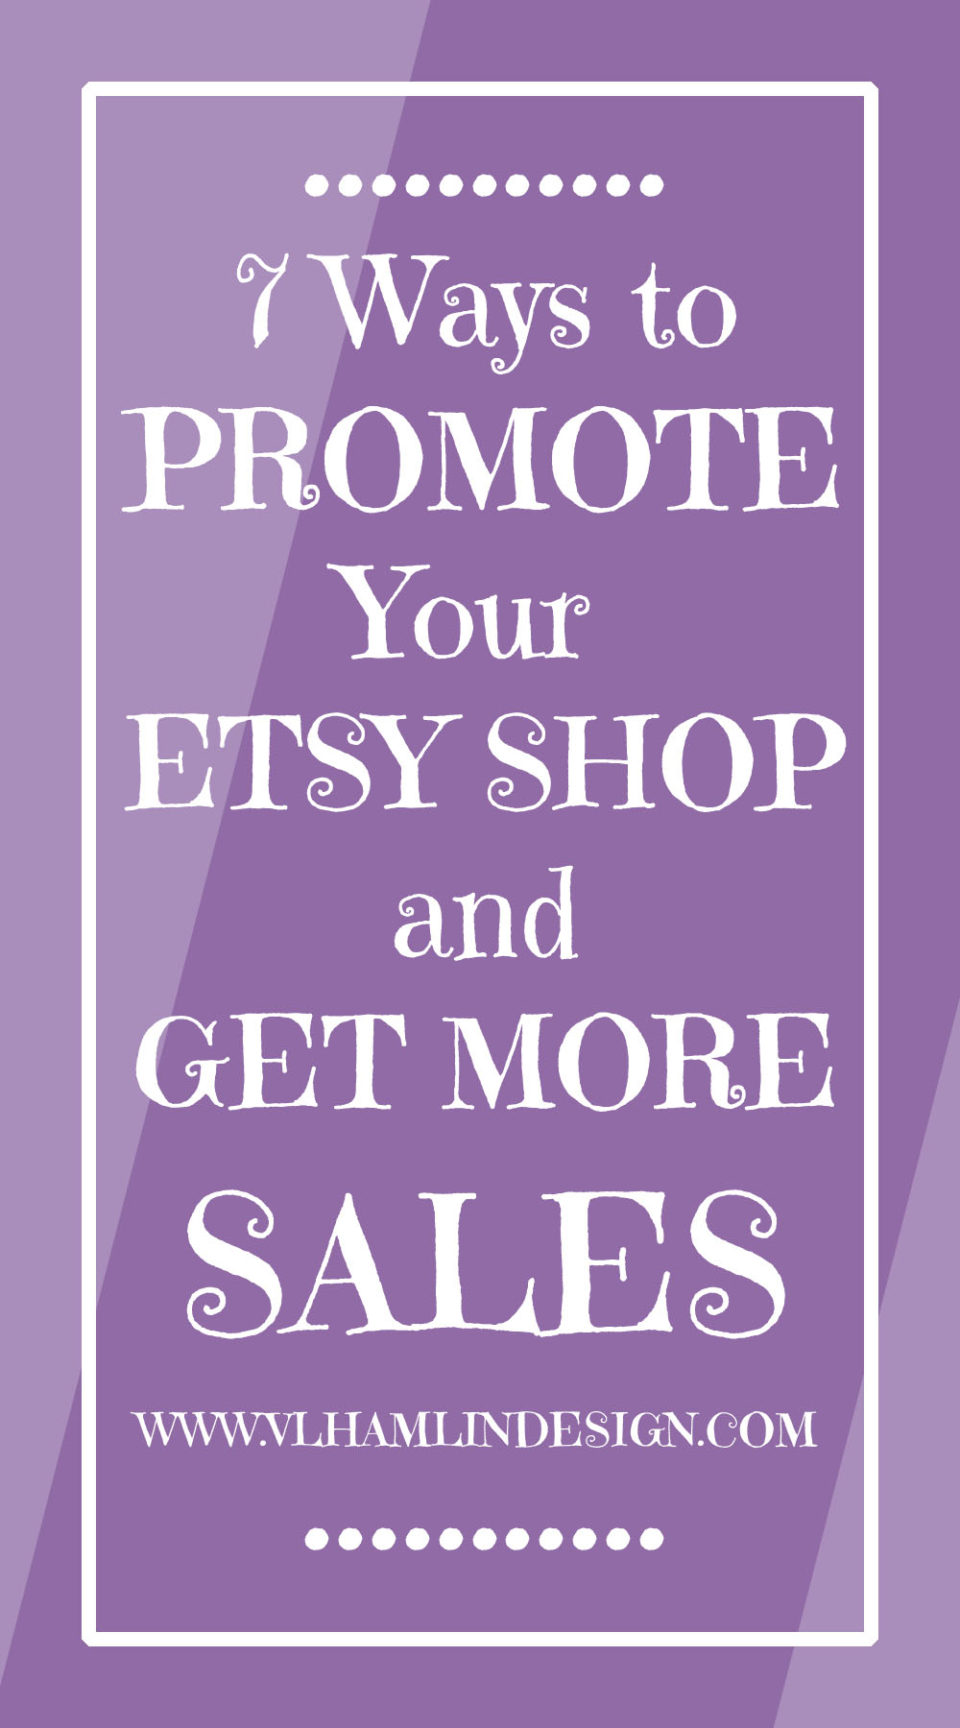 7 Ways to Promote Your Etsy Shop and Get More Sales